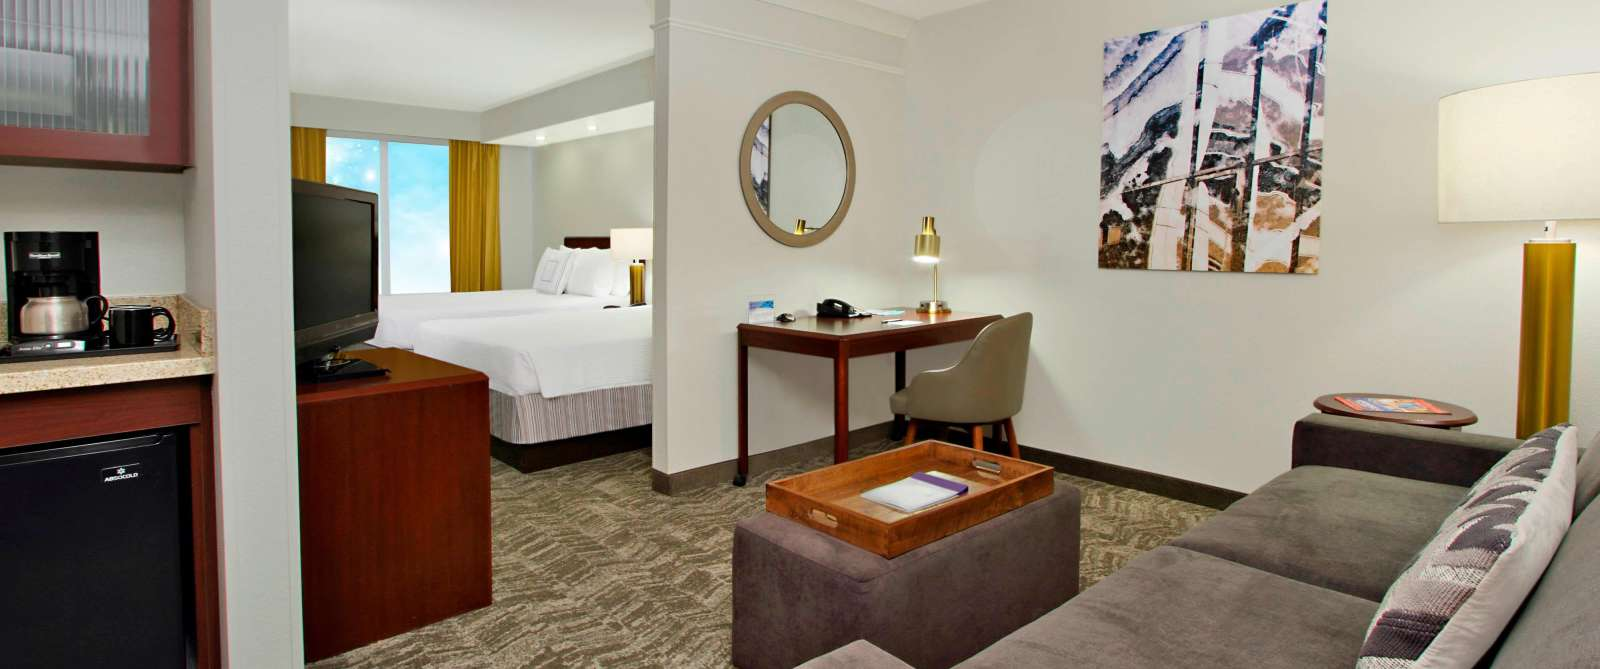 SpringHill Suites by Marriott Greenbrier